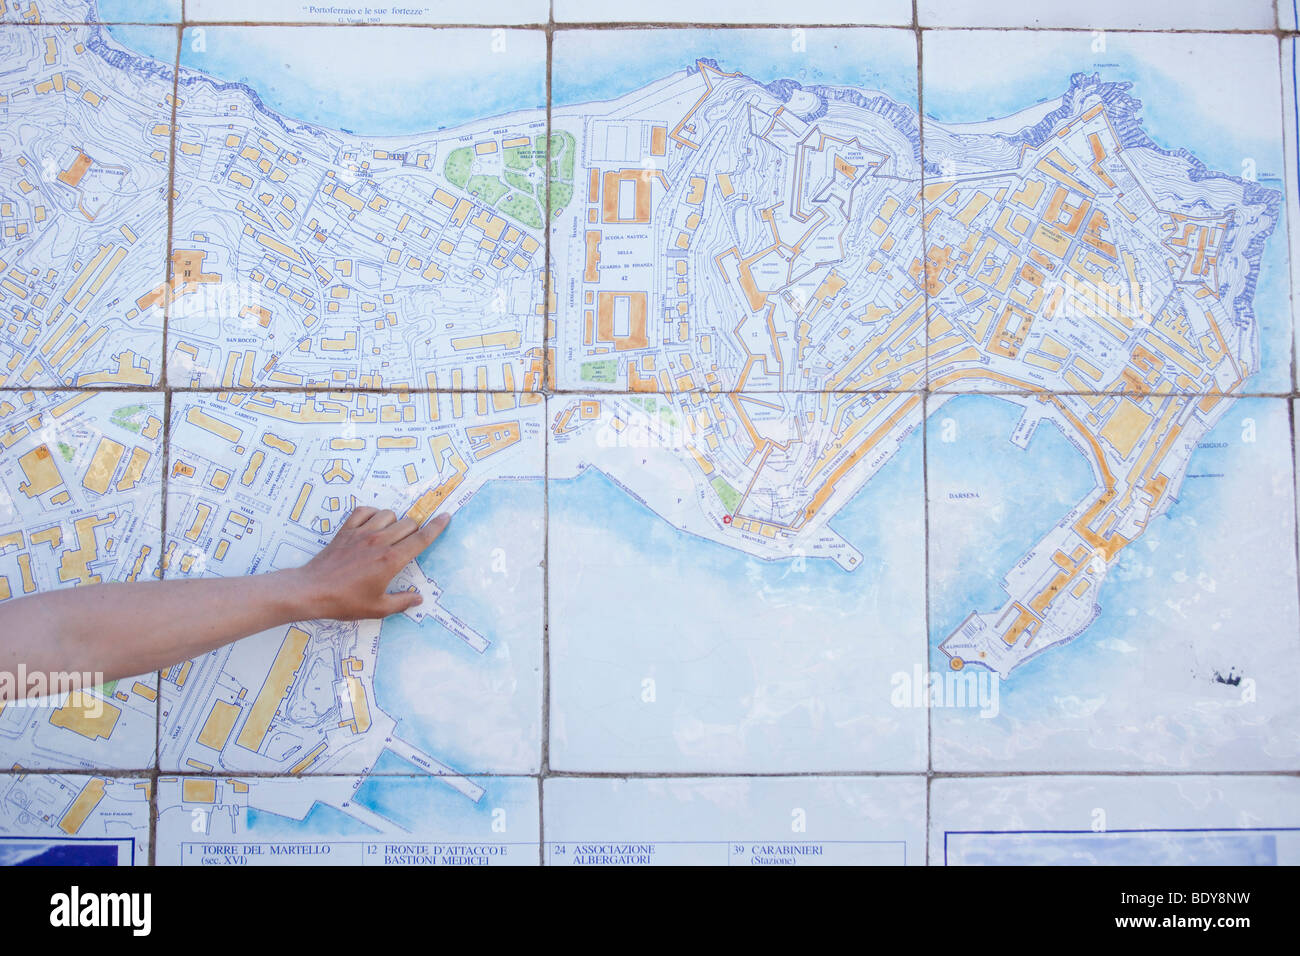 Man pointing with finger on tiled map - Stock Image